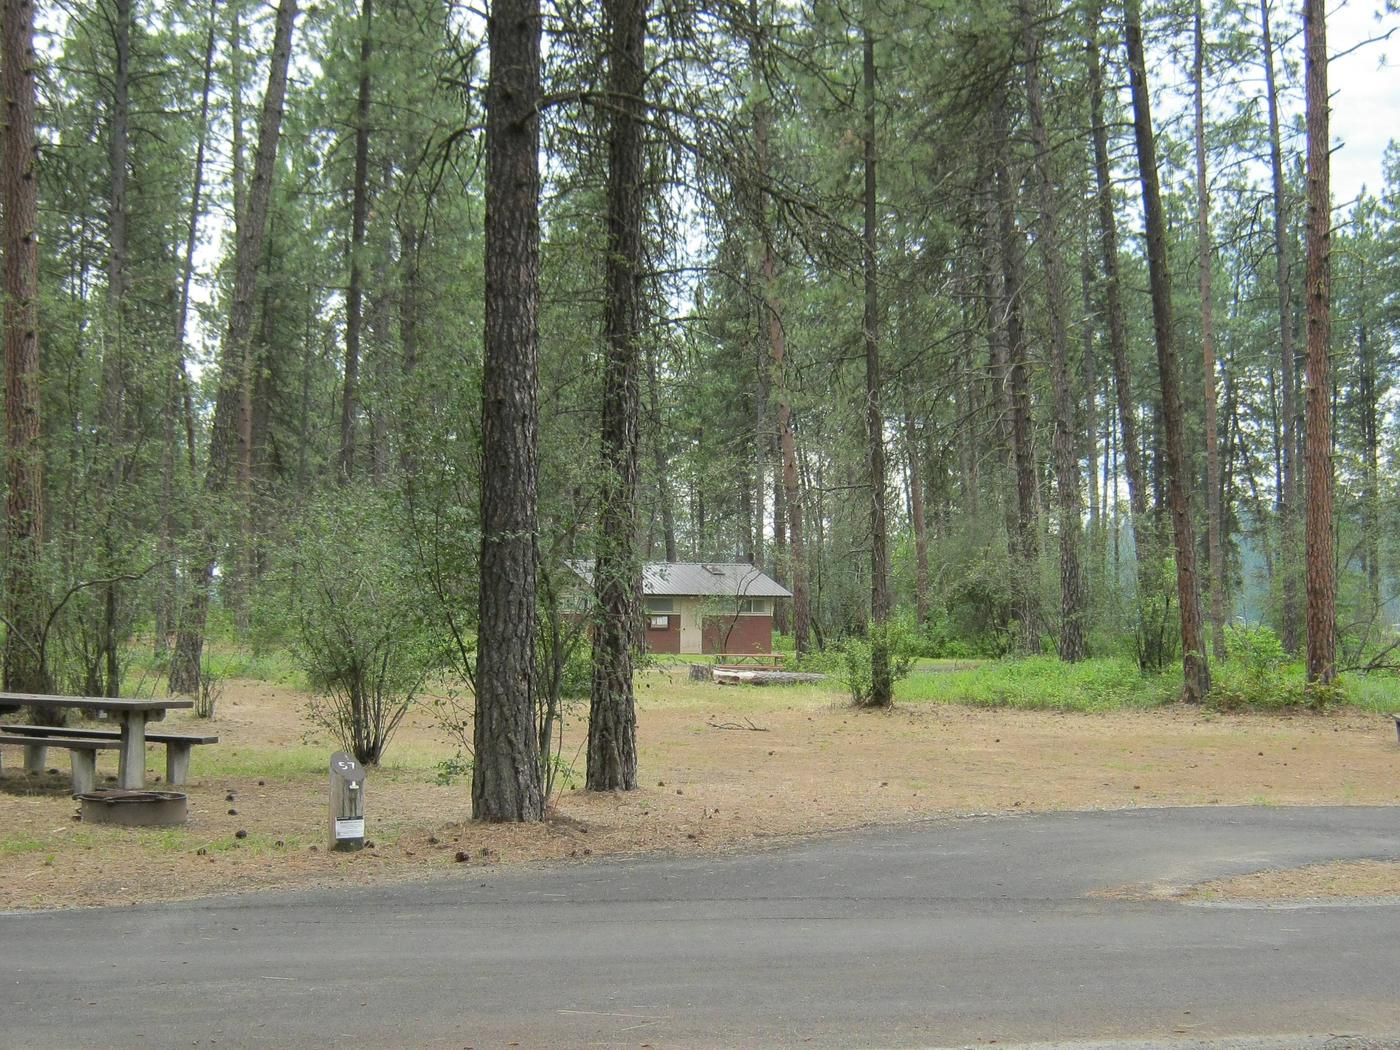 Pine trees in the backdropPull through paved parking